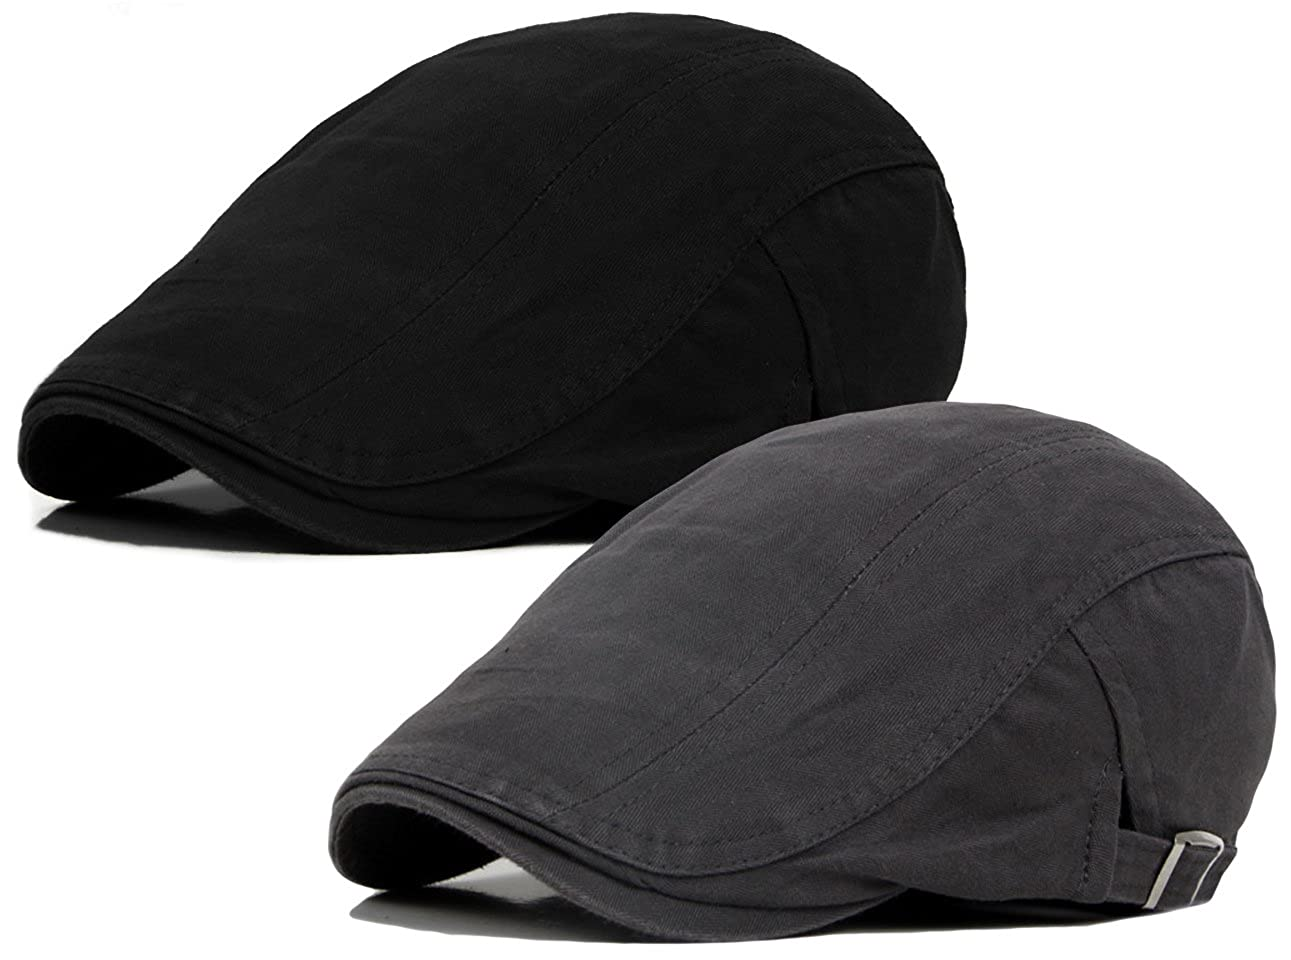 e55258ac8cab2 2 Pack Men s Cotton Flat Ivy Gatsby Newsboy Driving Hat Cap at Amazon Men s  Clothing store